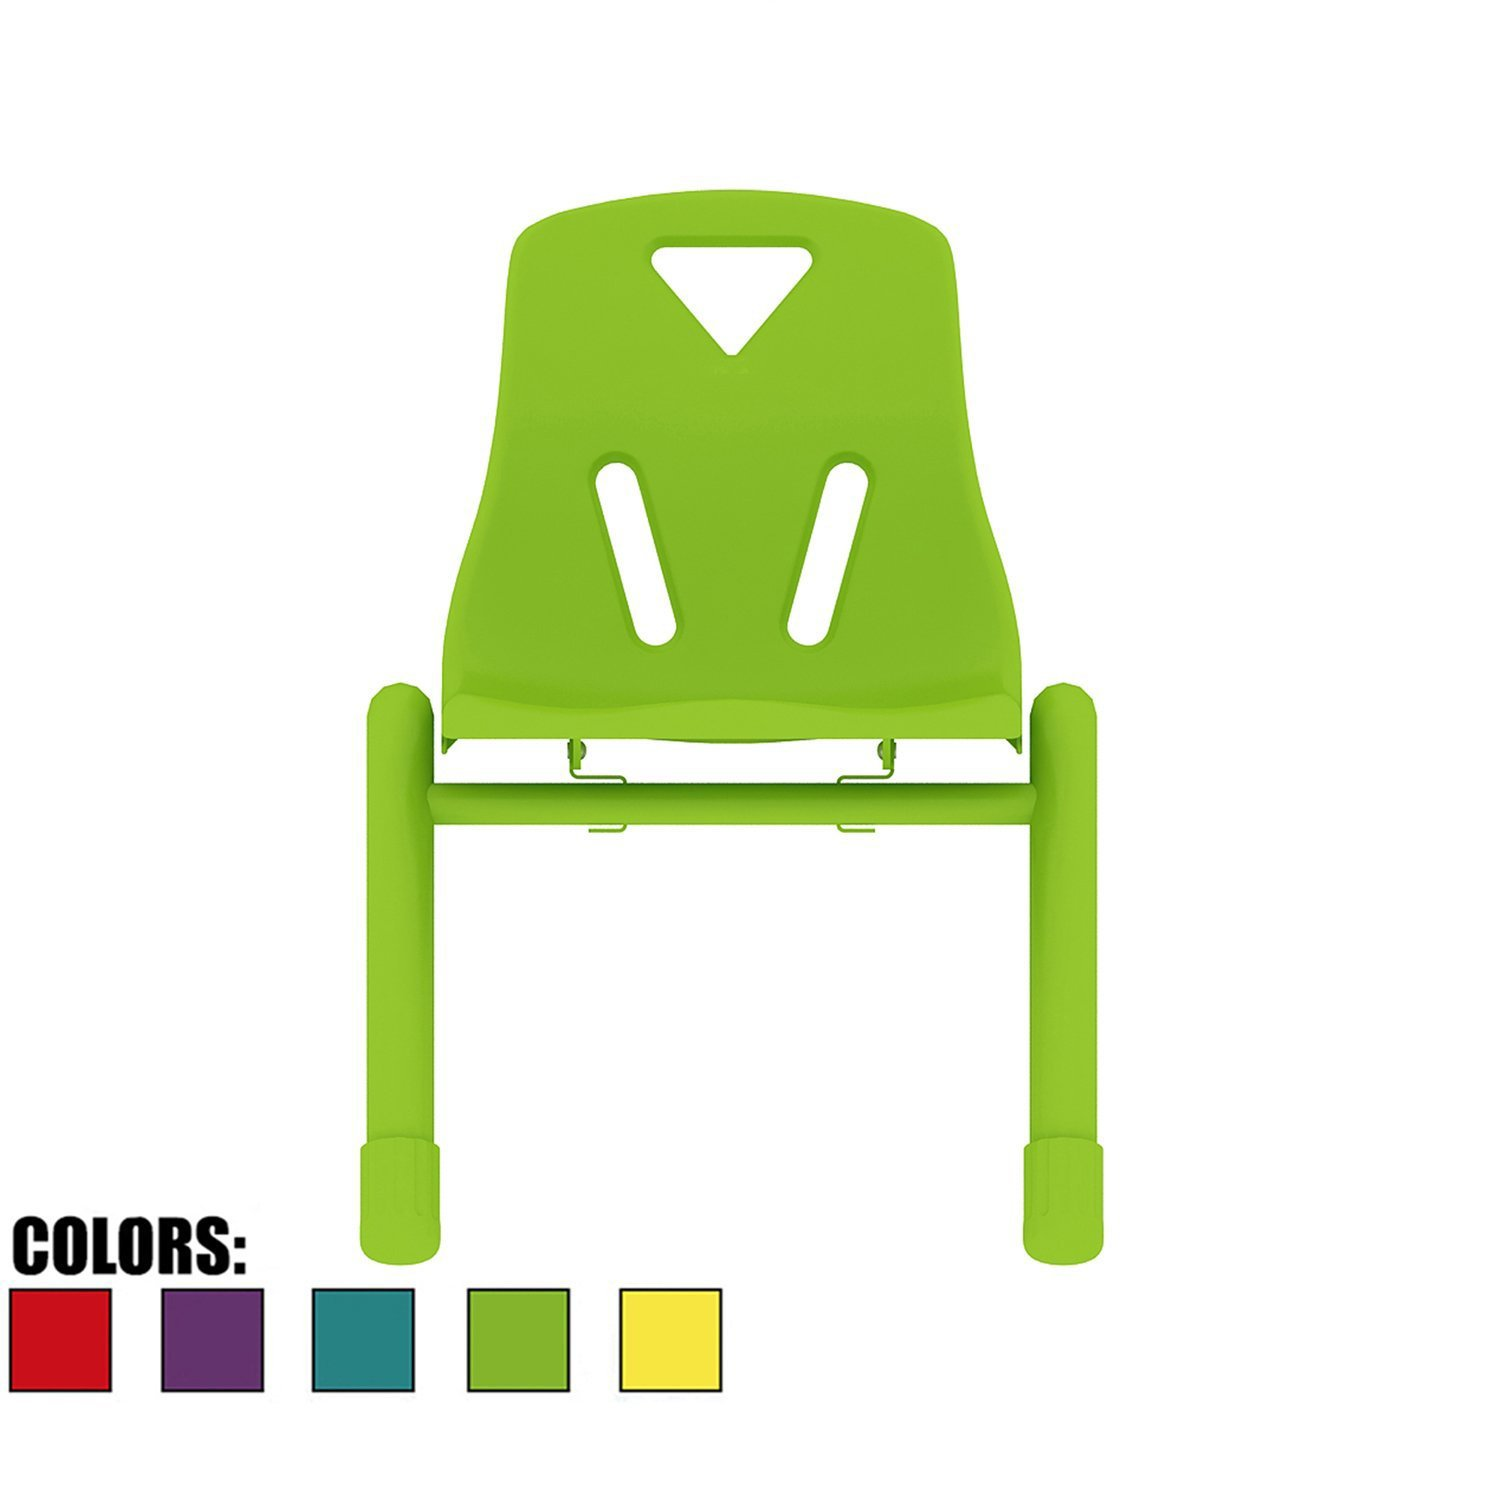 2xhome - Green - Kids Size Plastic Side Chair 12'' Seat Height Green Childs Chair Childrens Room School Chairs No Arm Arms Armless Molded Plastic Seat with Coated Metal Legs Stackable